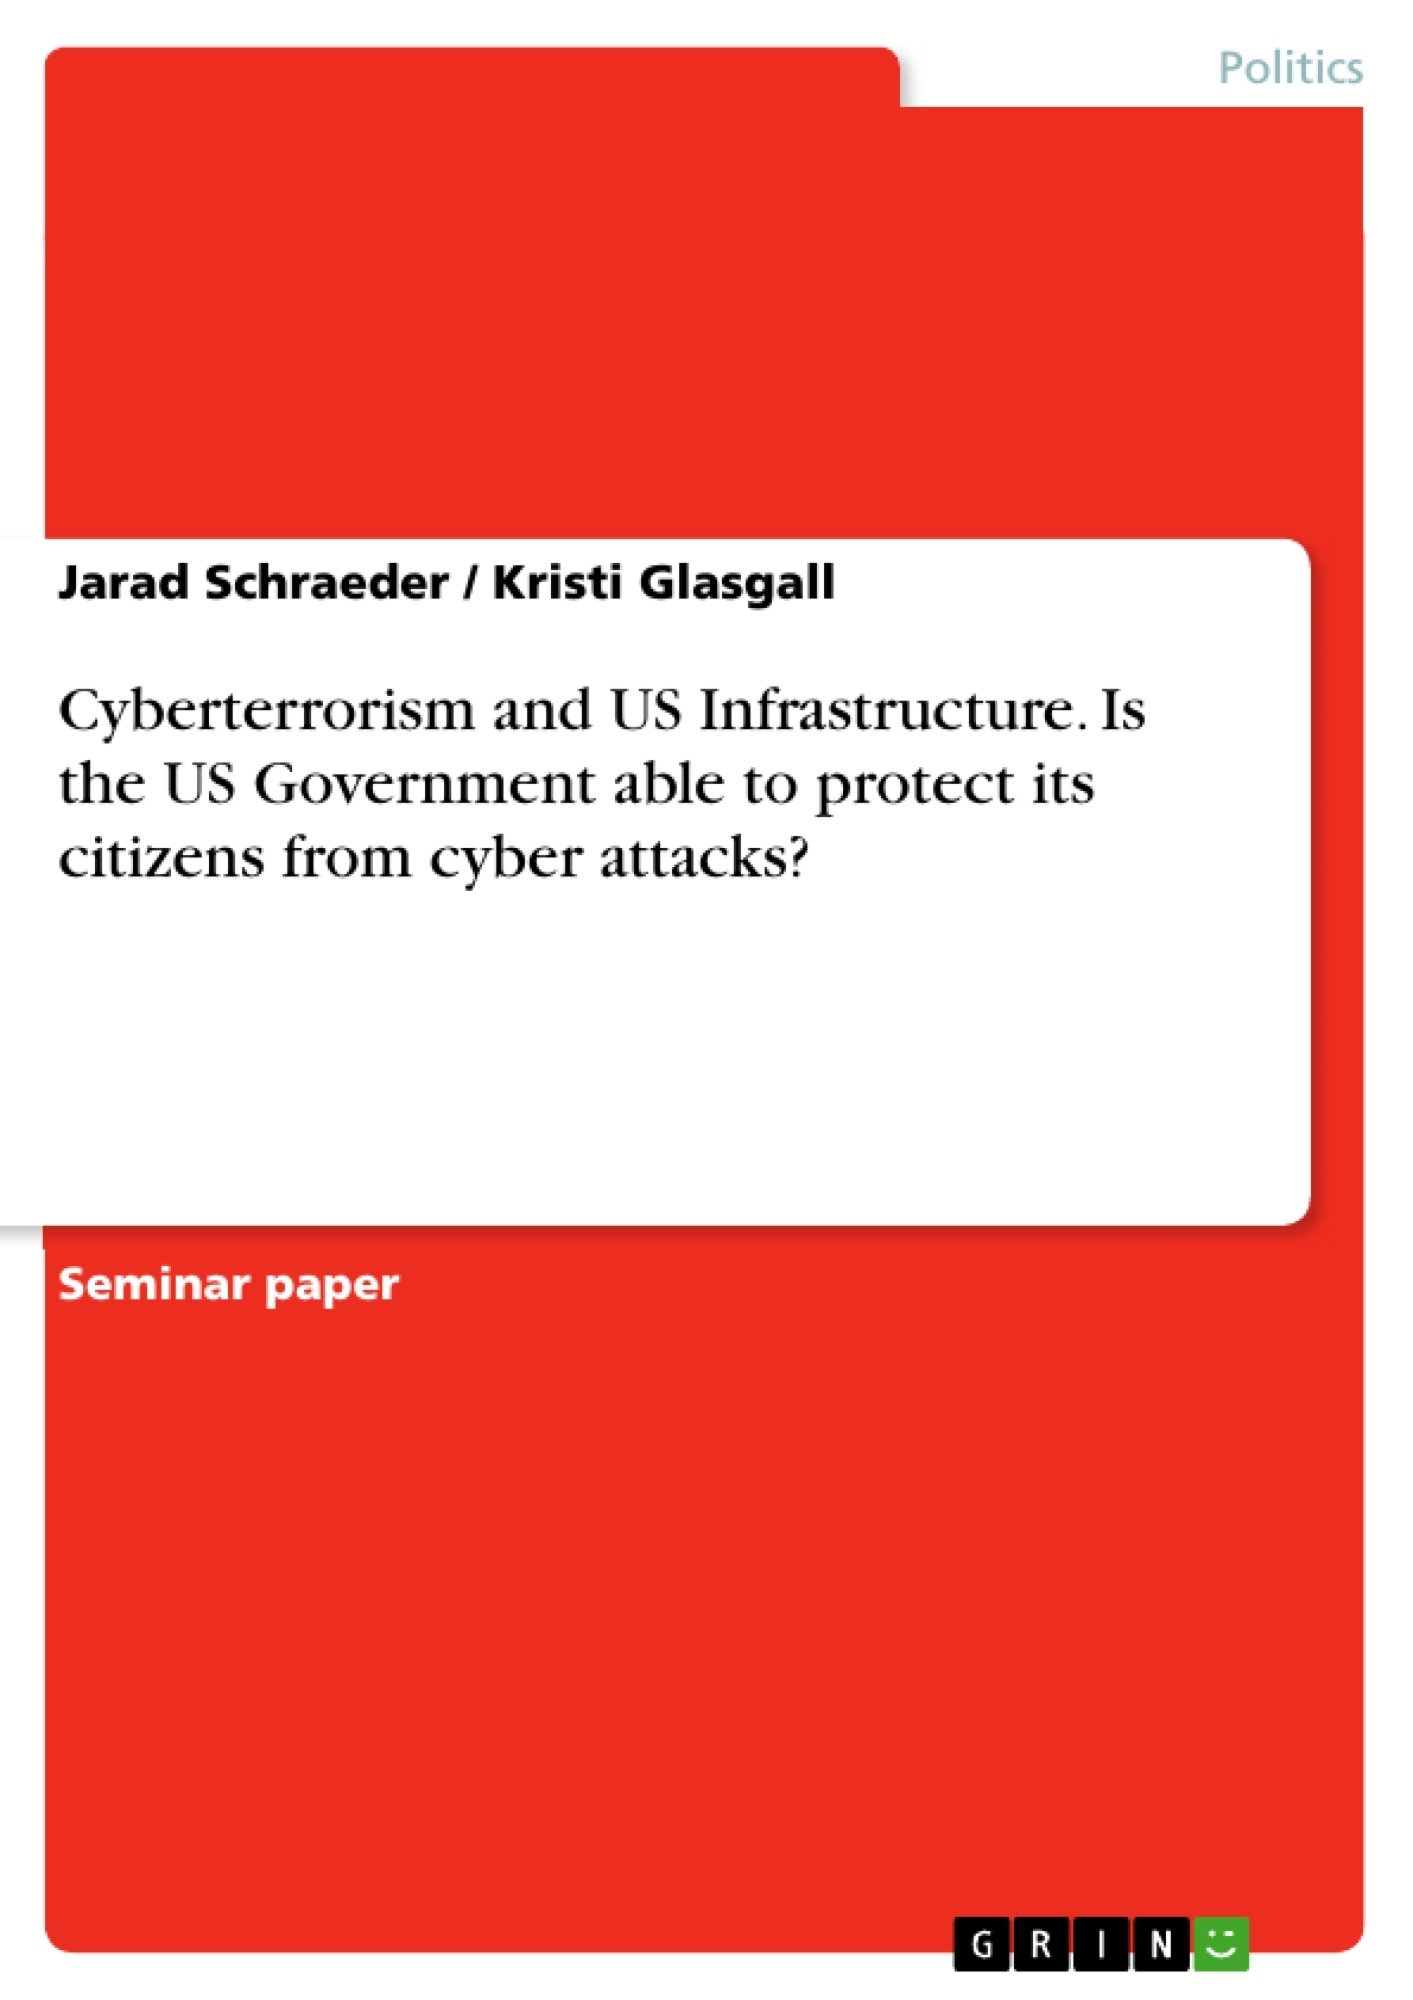 Title: Cyberterrorism and US Infrastructure. Is the US Government able to protect its citizens from cyber attacks?